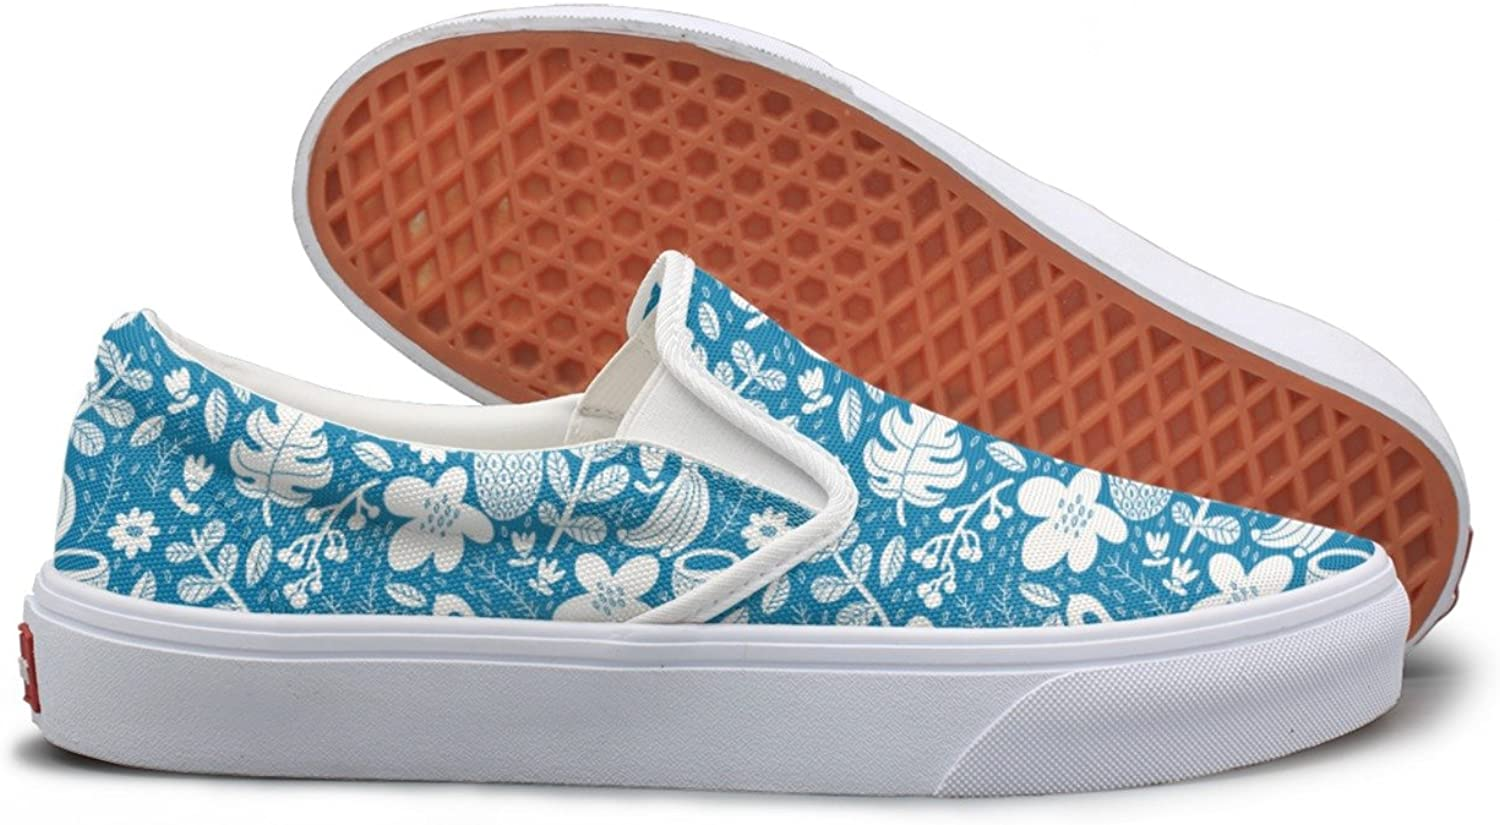 SEERTED bluee Tropical Fruit Trees Comfortable Sneakers for Women Wide Width